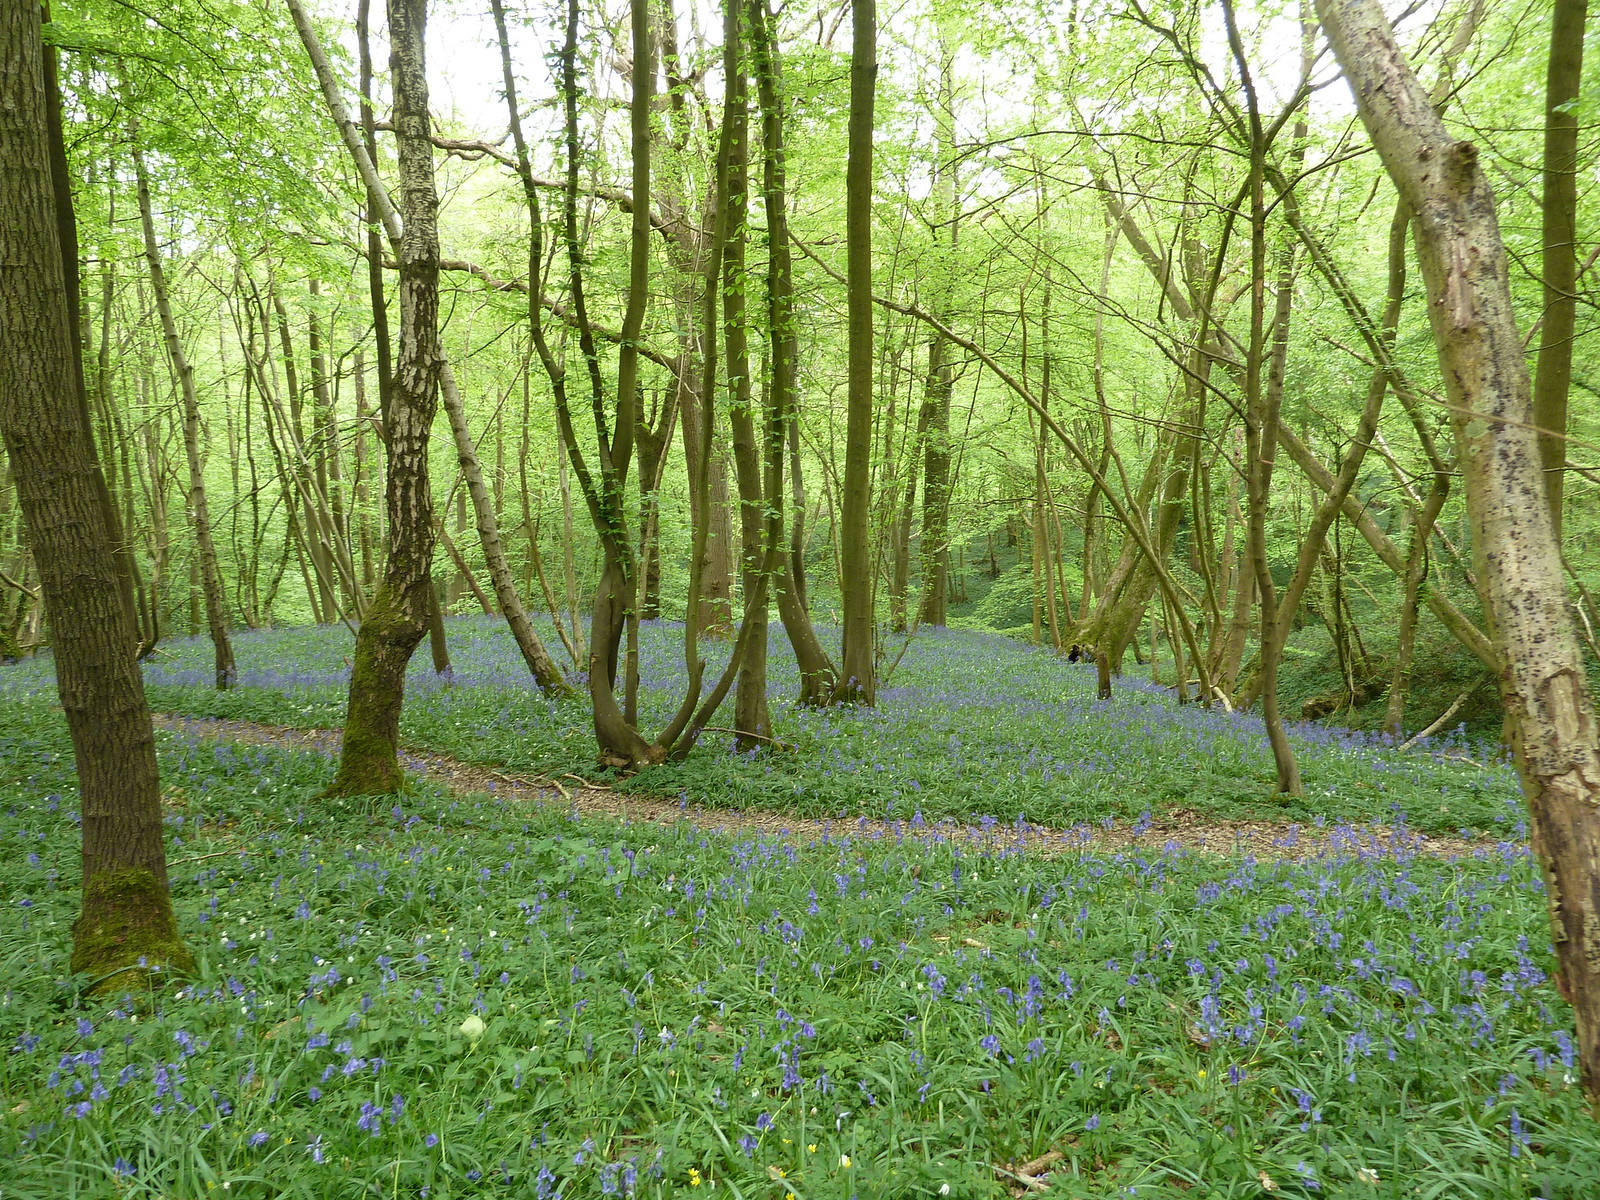 Bluebell Woods Tenterden to Rye.